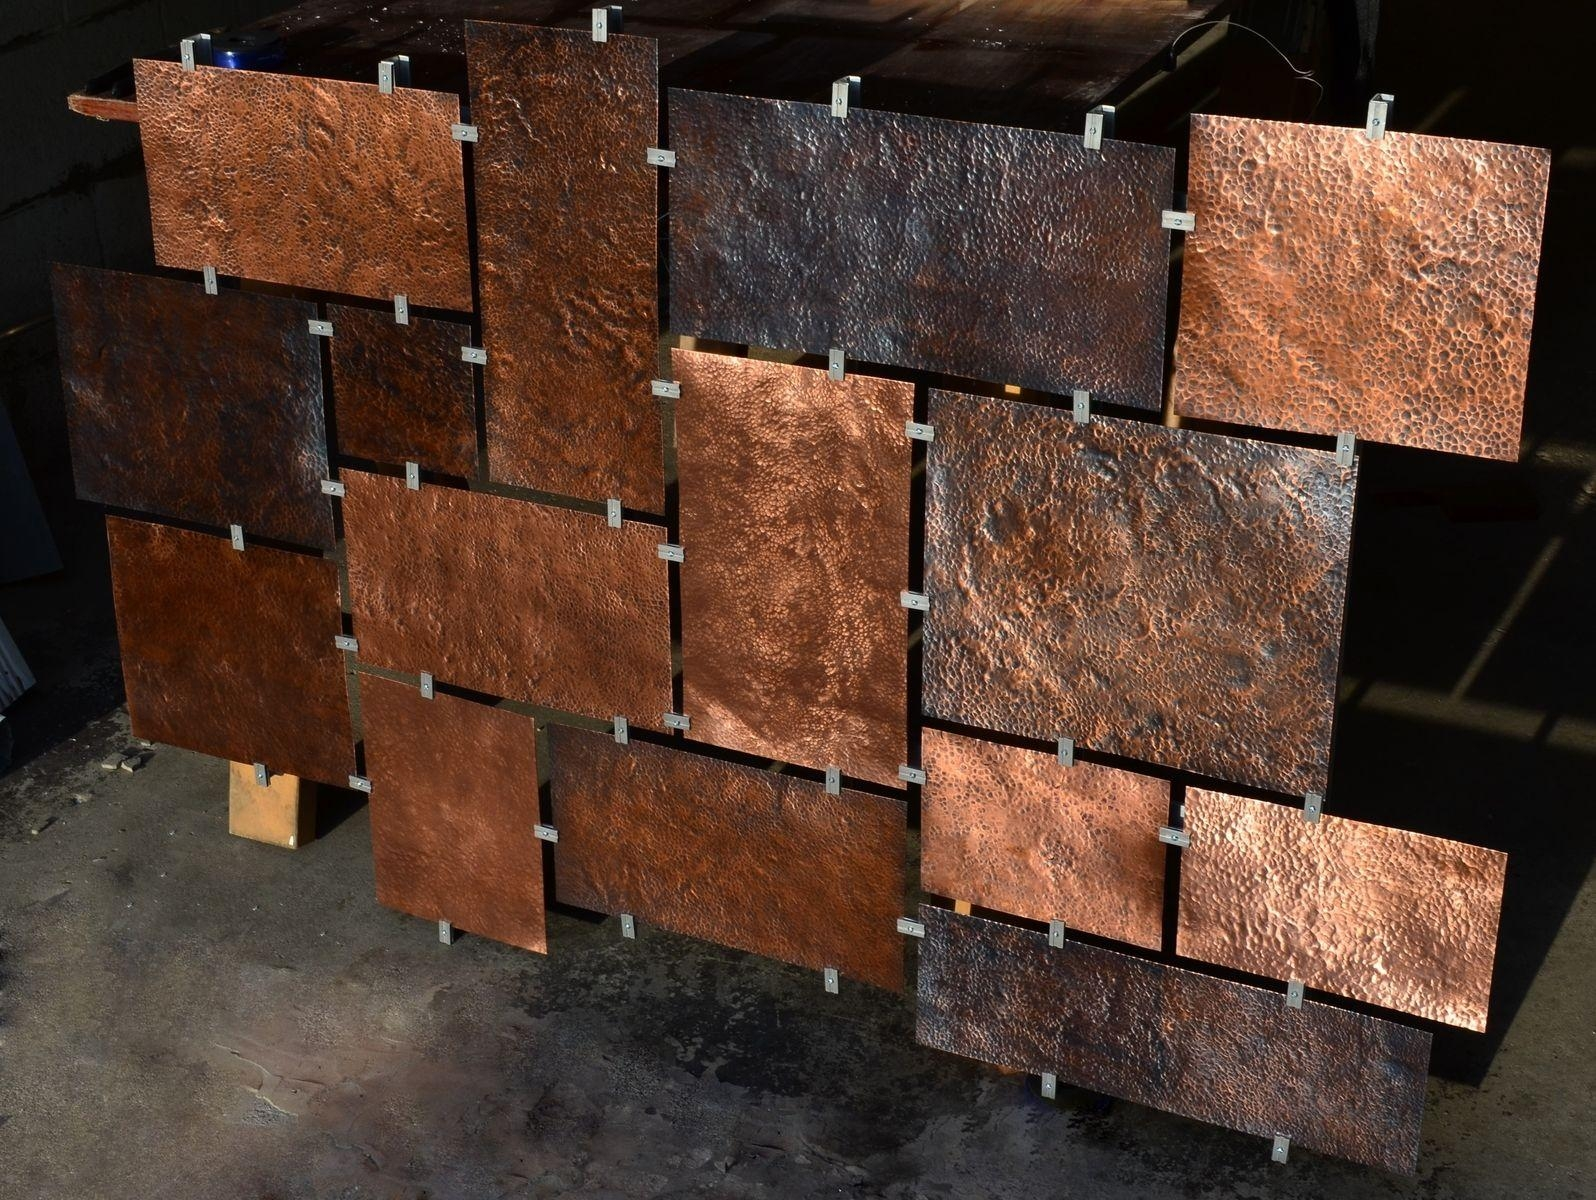 Hand Made Custom Hammered Copper Wall Artfabitecture Within Hammered Metal Wall Art (Image 5 of 20)